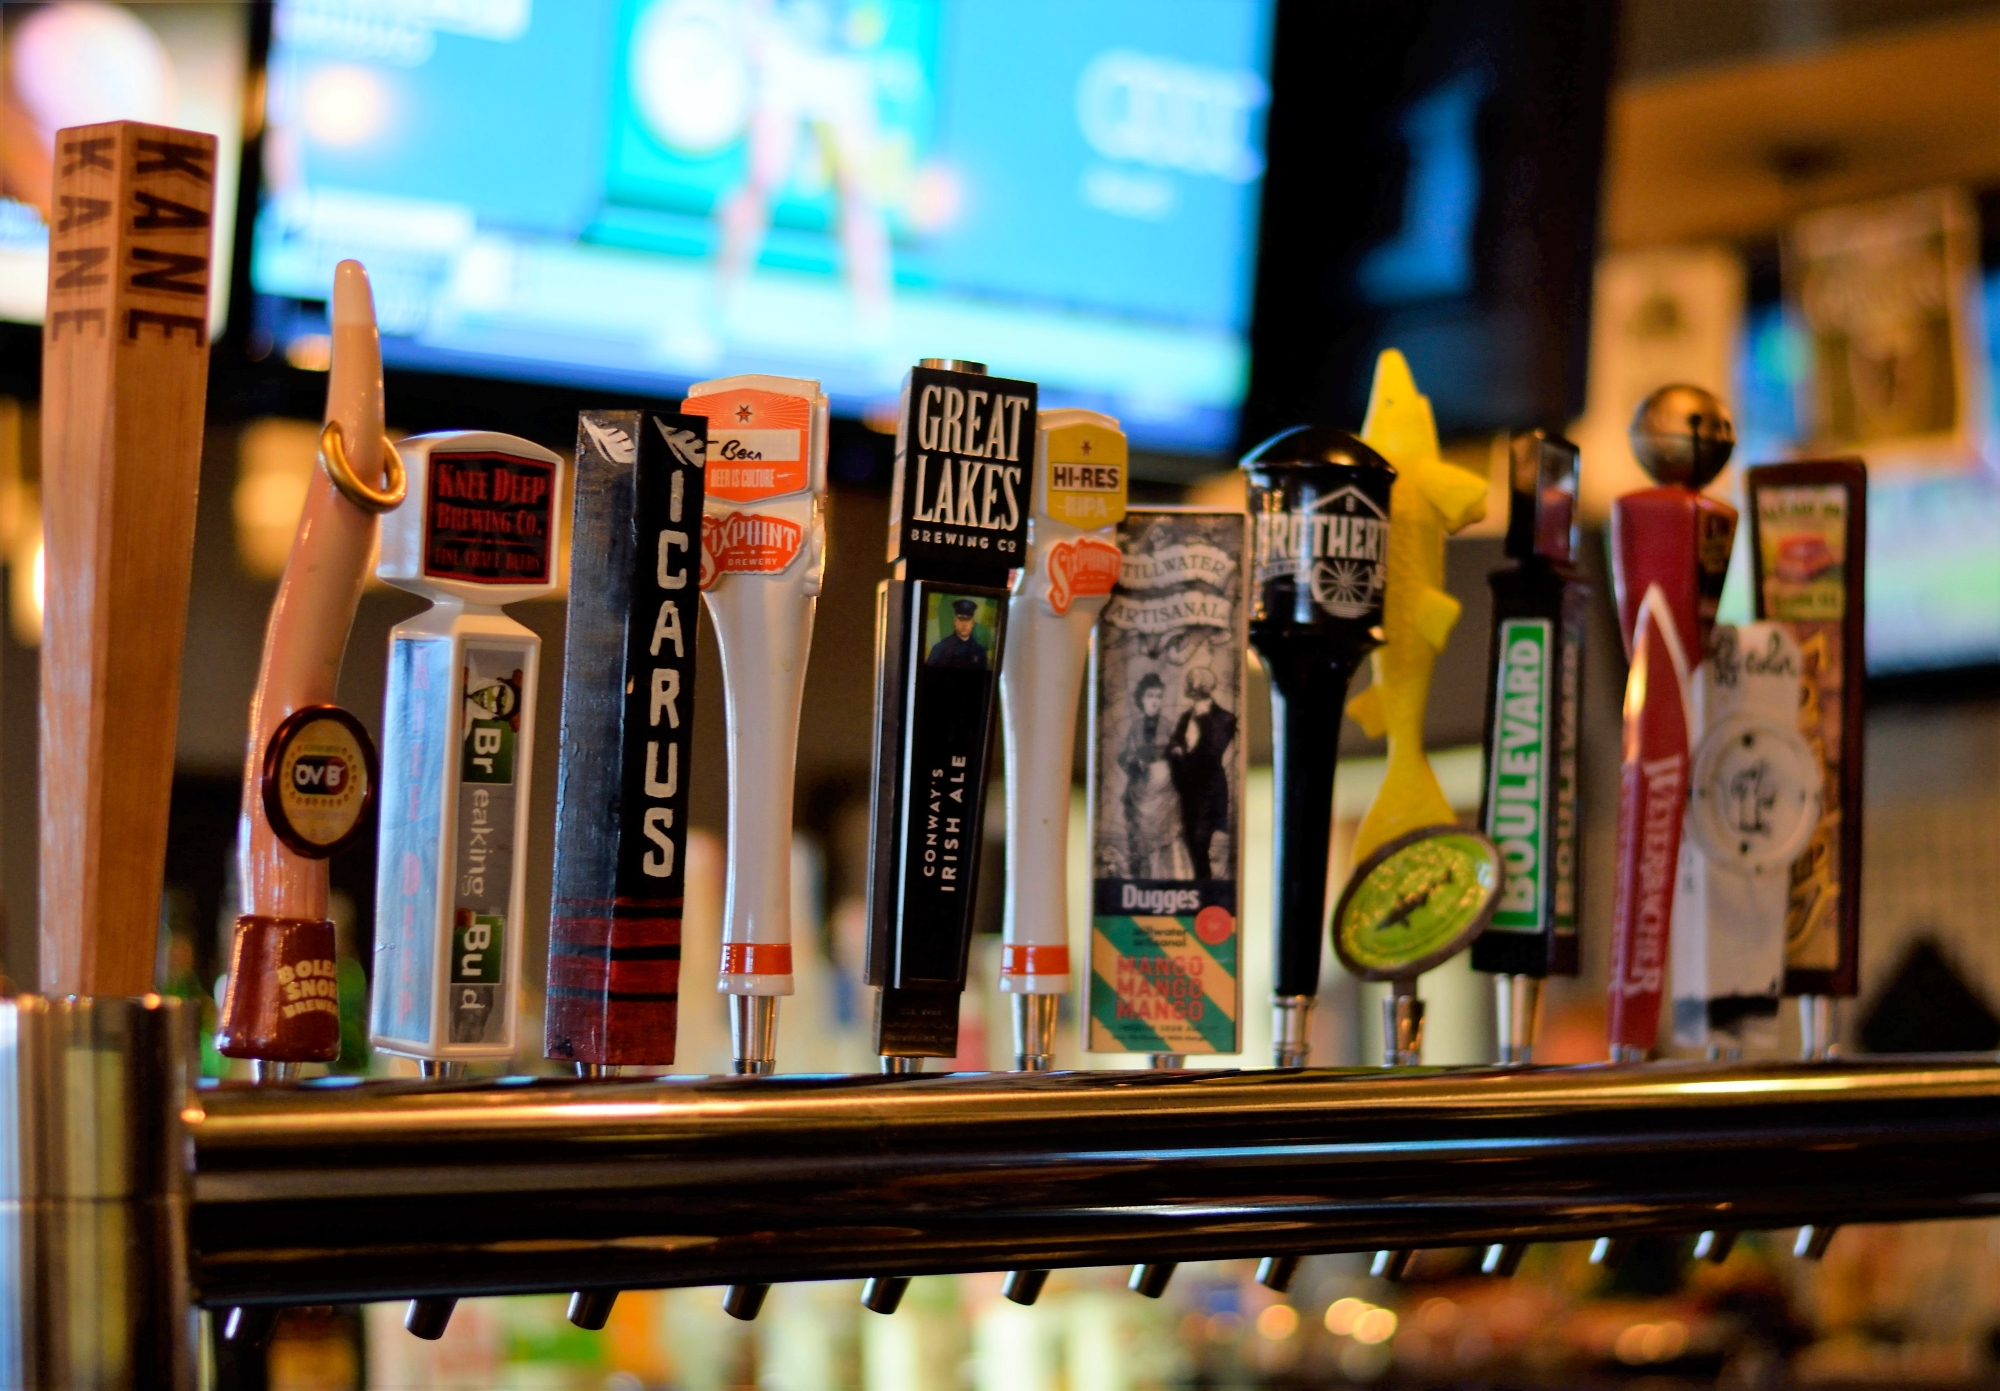 So many great beers on tap here... local and non-local choices abound!